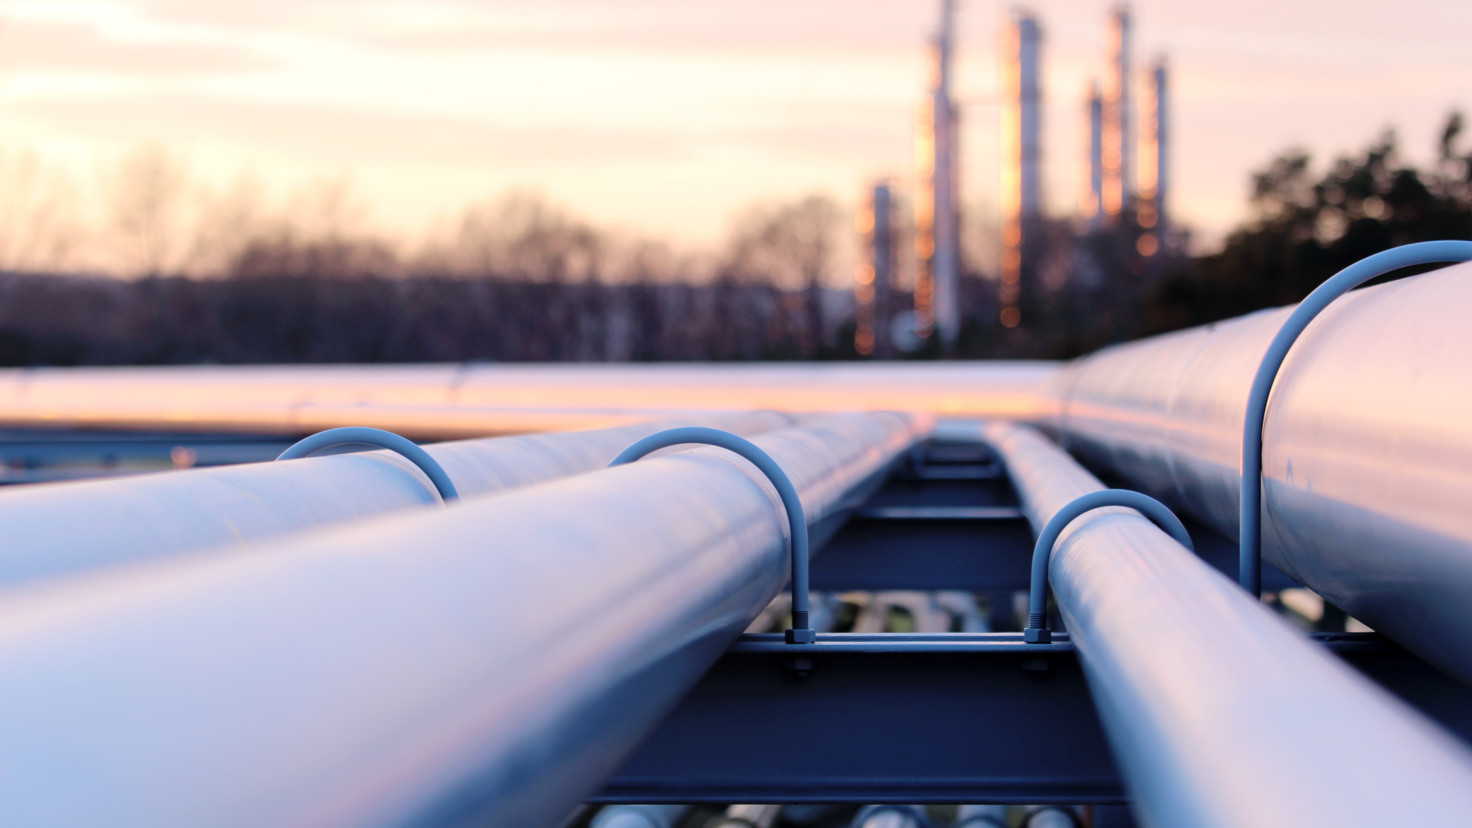 PX-Backup takes care of pipelines, too